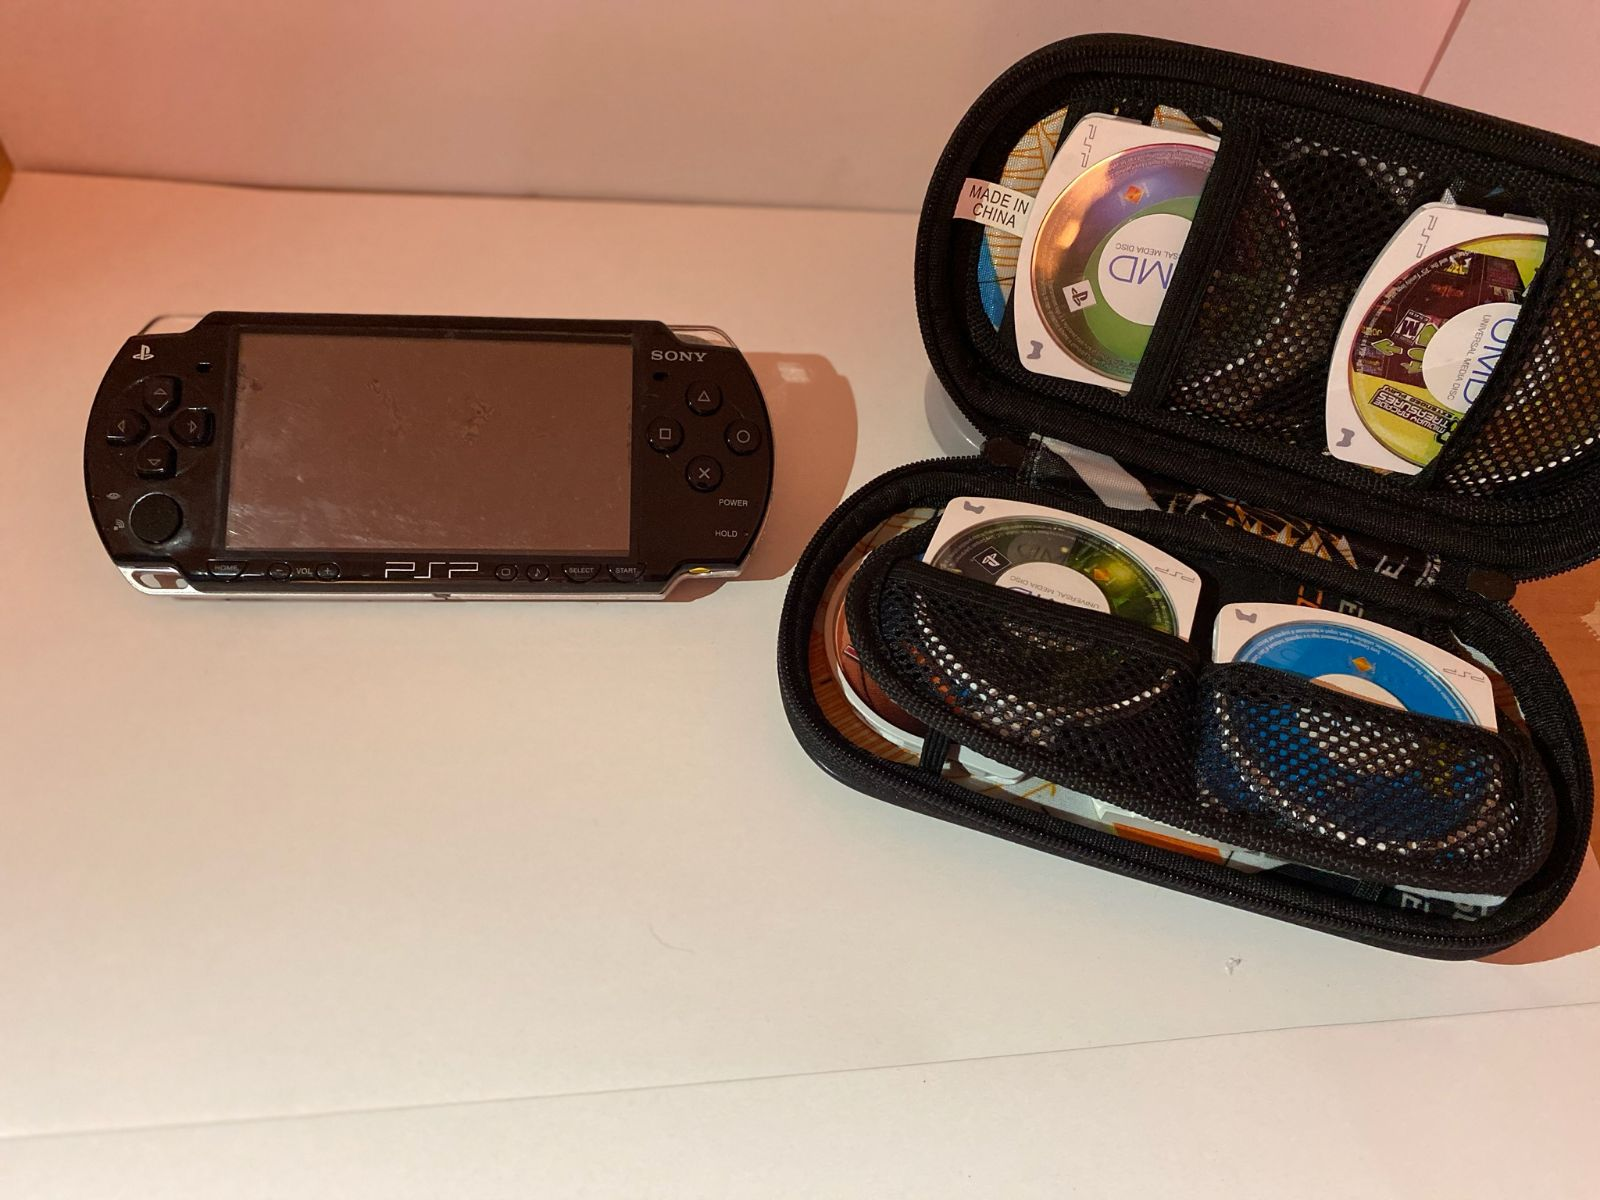 PSP 2000 with 6 games, SNES emulator